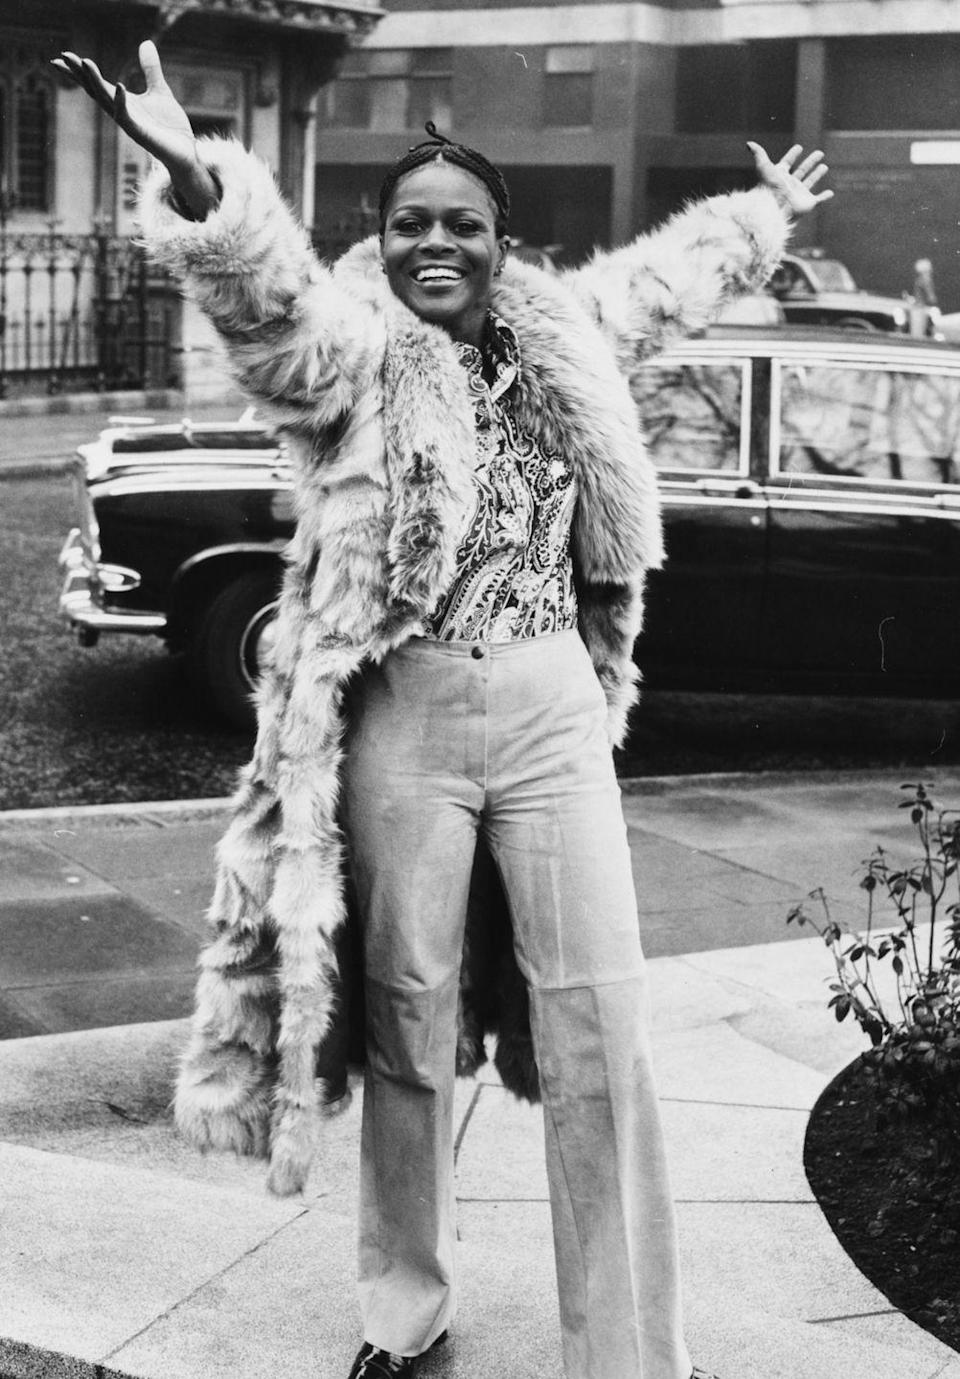 <p>During a visit to London, Tyson exudes joy while rocking a paisley shirt and fur.</p>